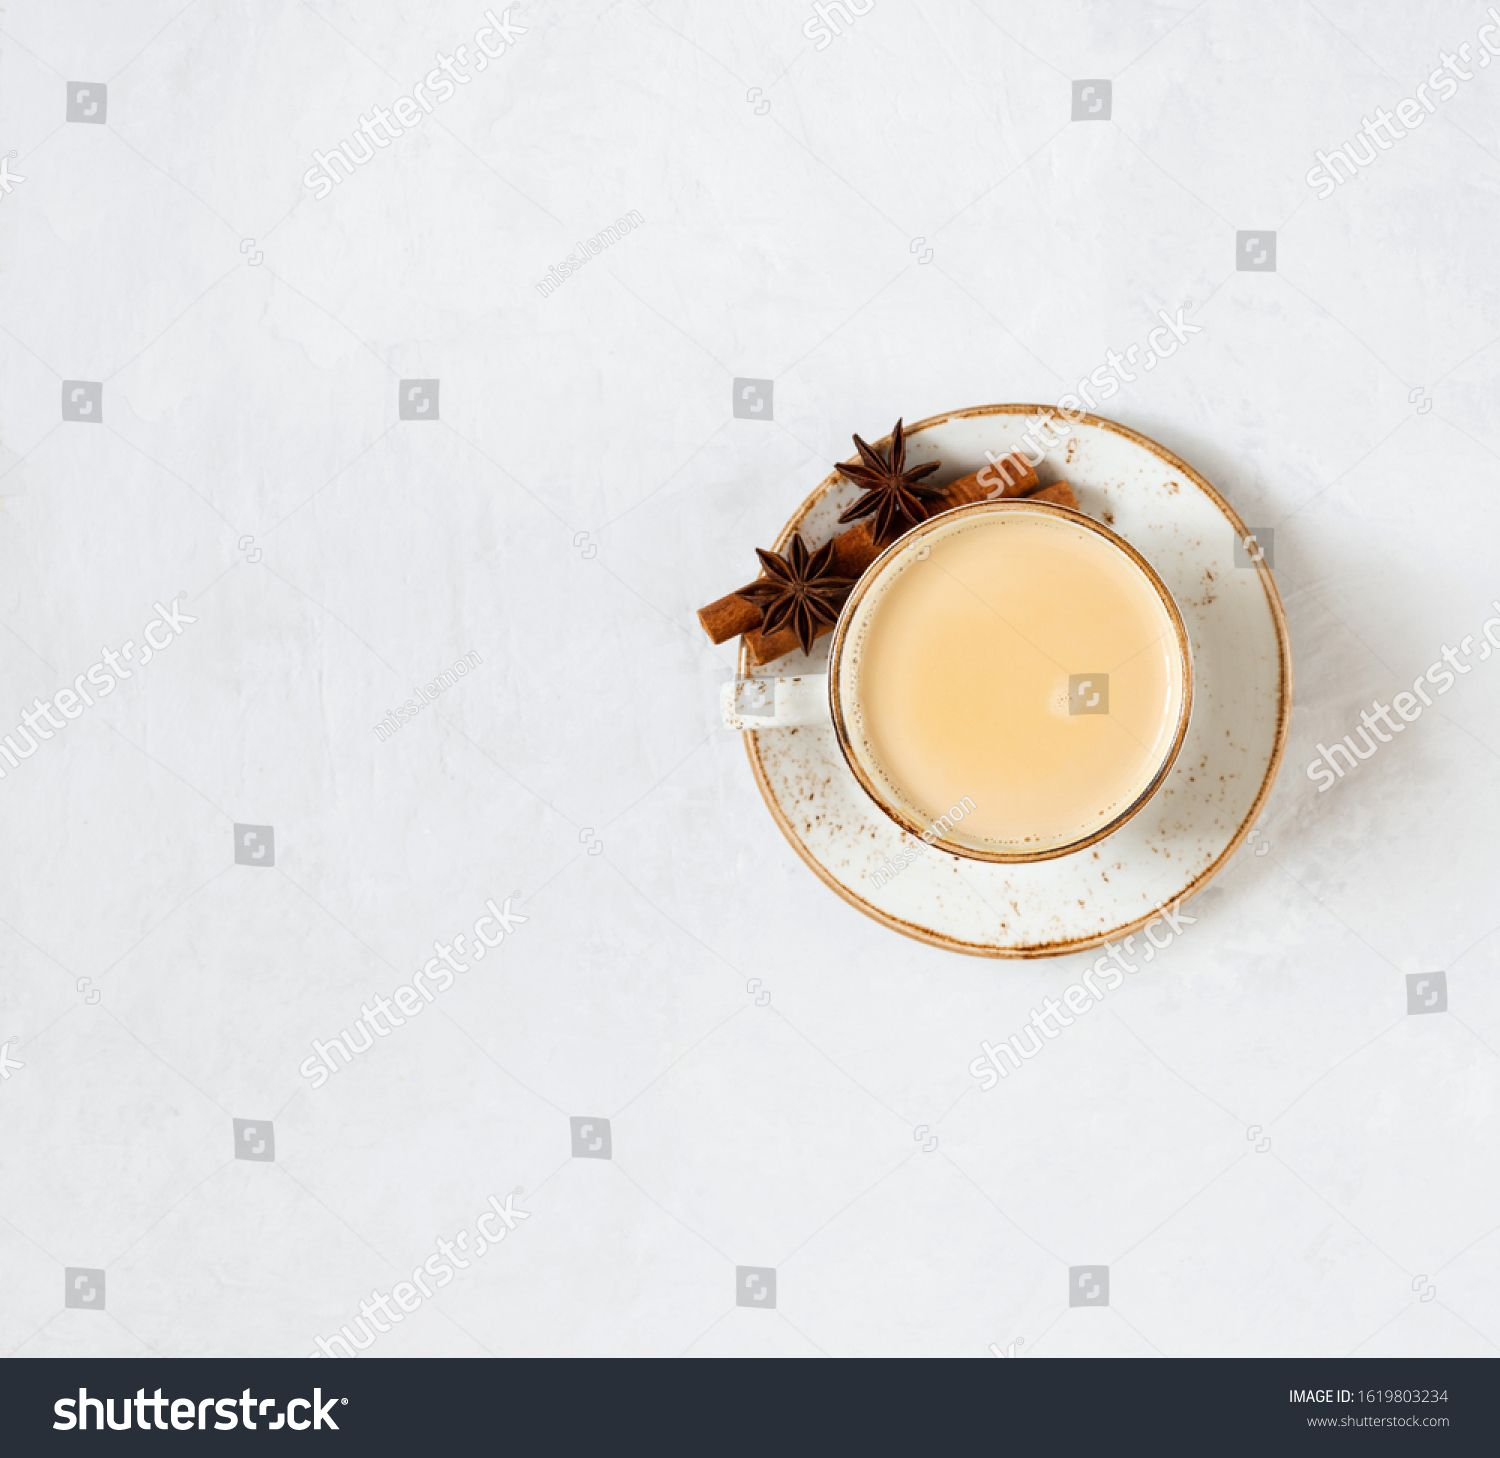 Indian Masala Chai Tea Traditional Indian Hot Drink With Milk And Spices On White Concrete Background Top View Flat In 2020 Masala Chai Tea Hot Spices Masala Chai